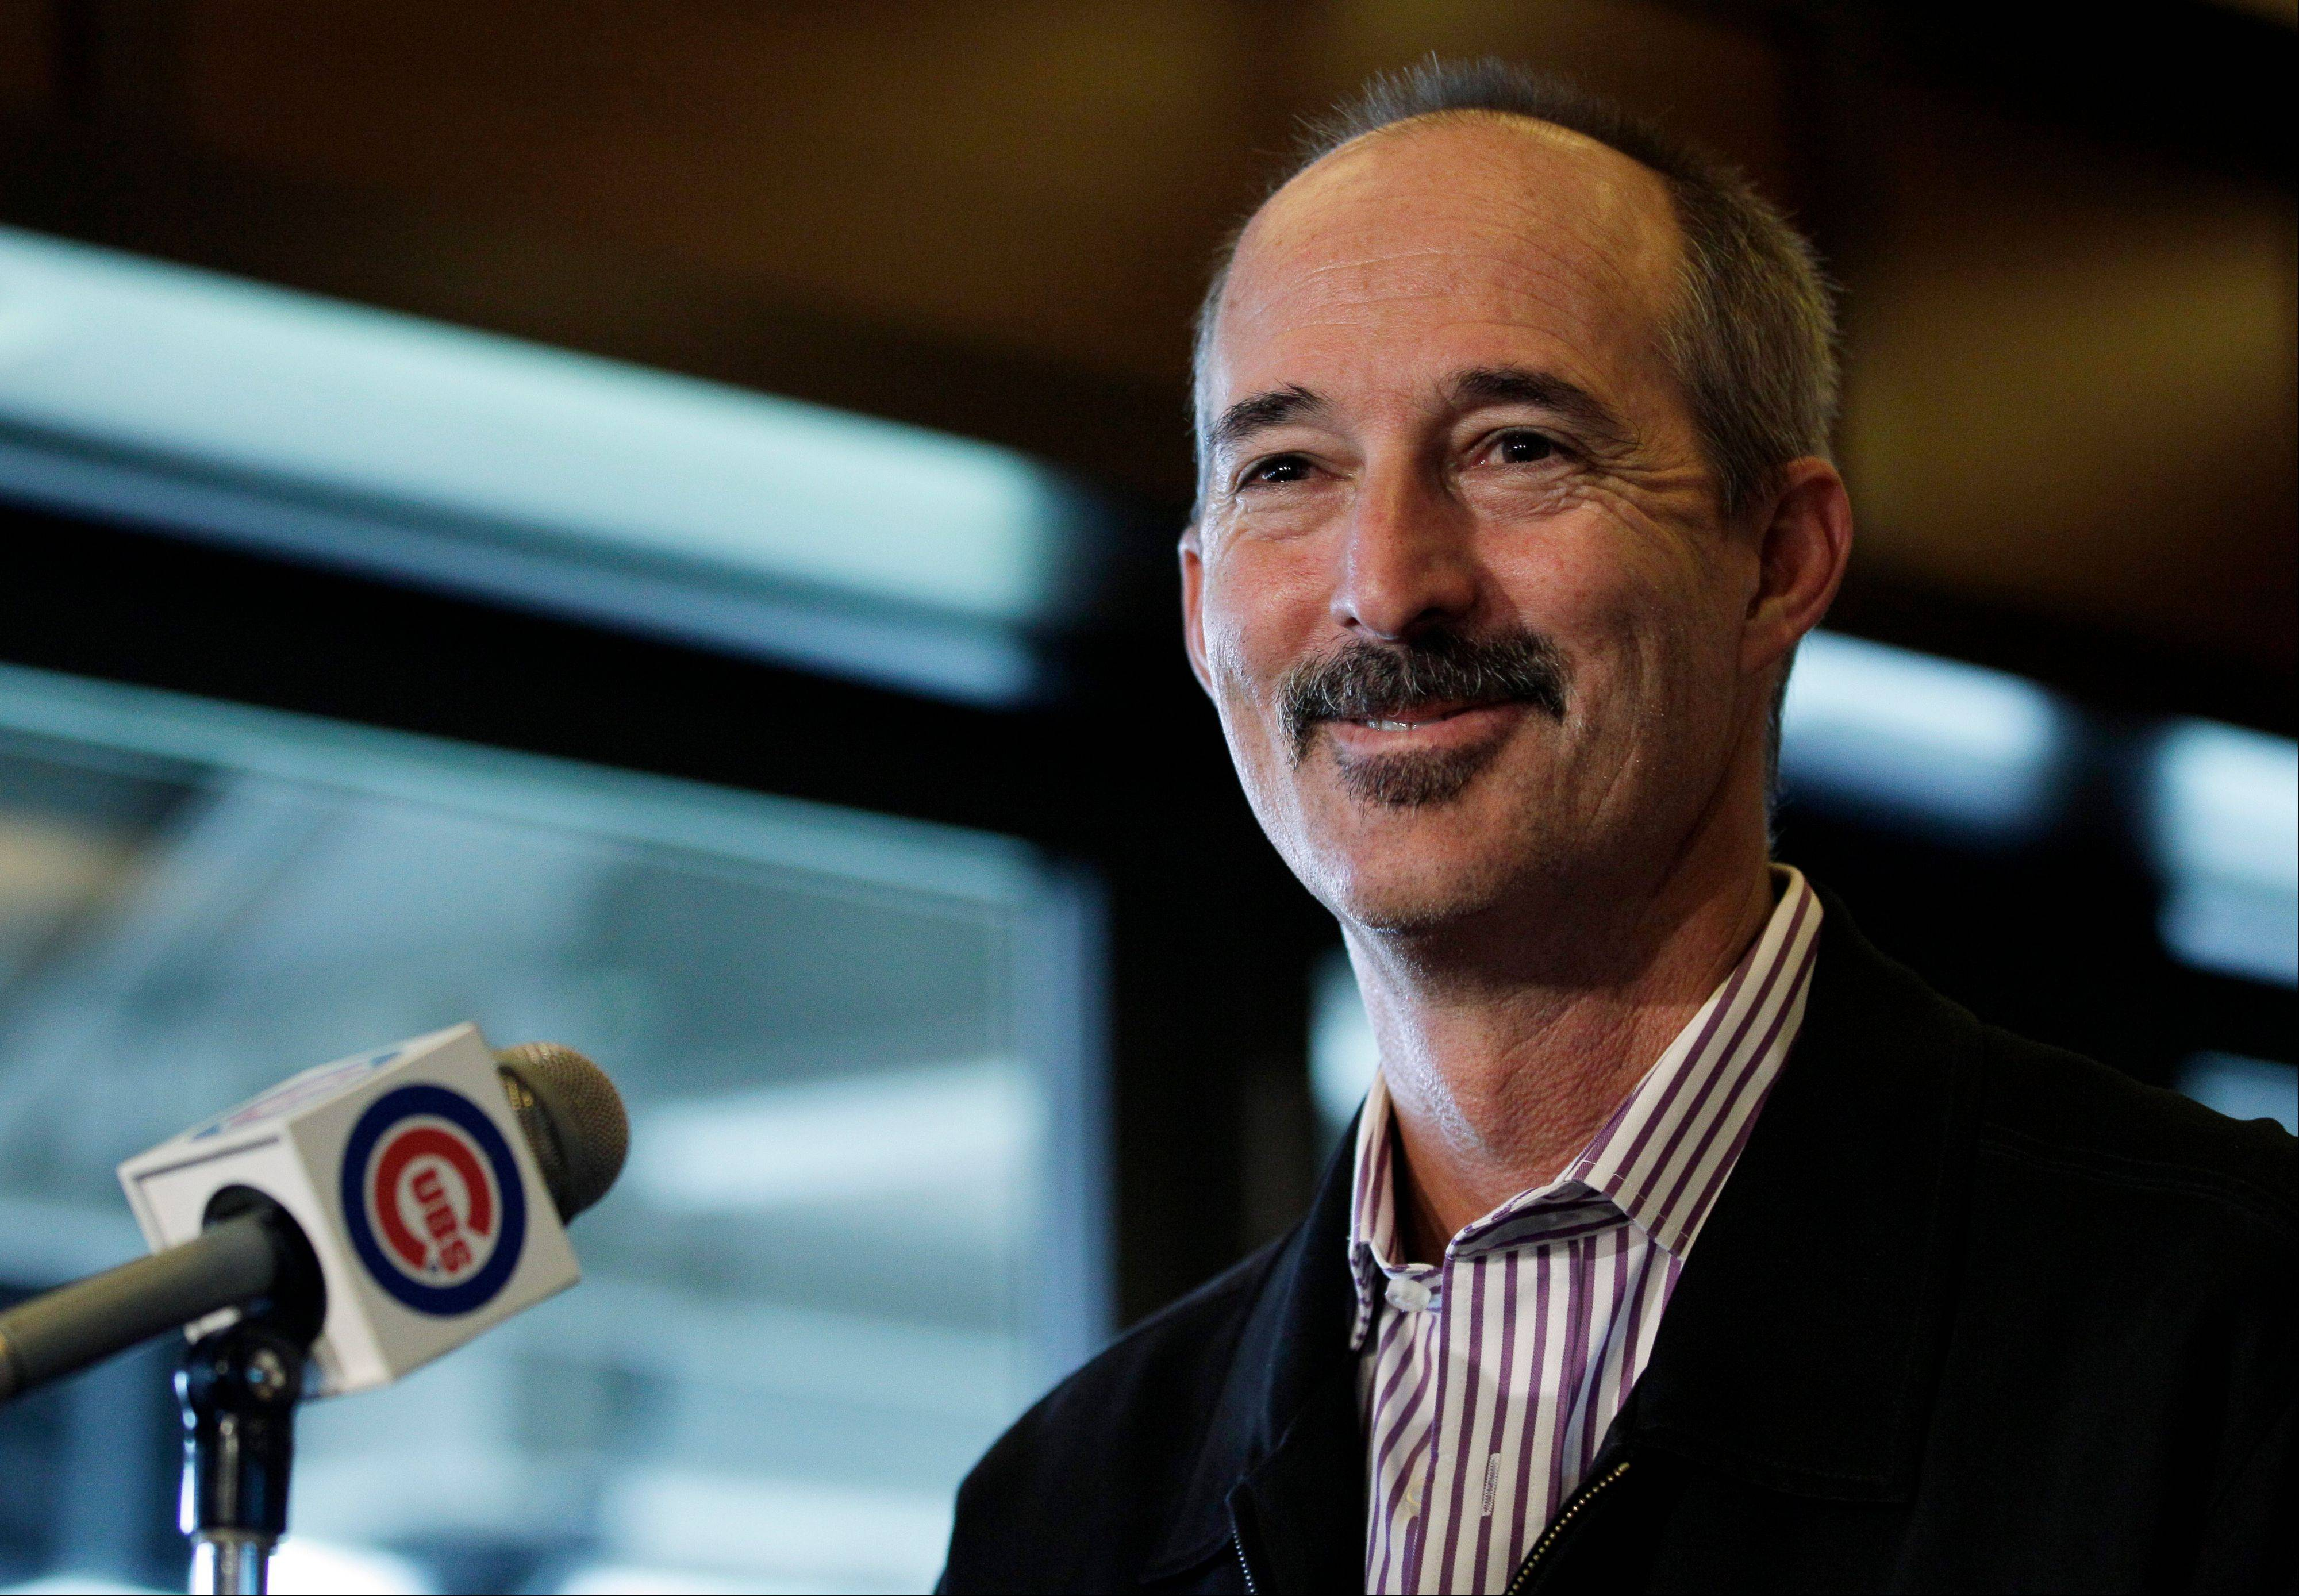 Texas Rangers pitching coach Mike Maddux smiles as he speaks at a news conference following his interview for the manager position with the Cubs at Wrigley Field.